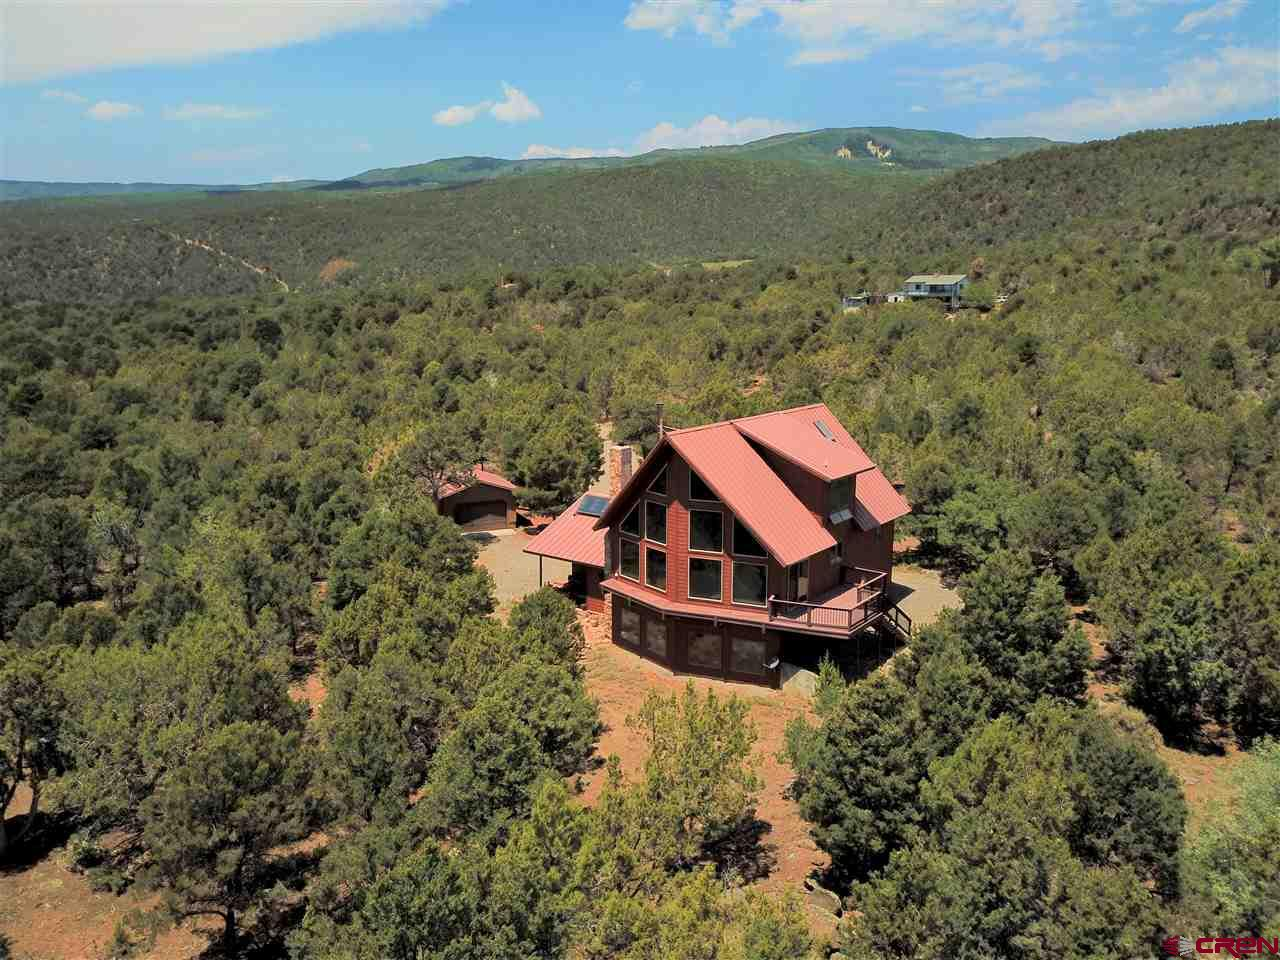 Western Colorado mountain home, privately tucked away in the trees with inspiring views. Located at the end of a private driveway, this peaceful home is sitting on 8.46 treed acres at an approximate elevation of 6,840 feet. This three level home is wrapped in cedar siding (recently stained), has a metal roof, an East facing deck and private upper level balcony. A new wood stove in the living room creates a perfect environment to enjoy the outdoors. Gorgeous wood floors and tongue-n-groove ceiling. All the light bulbs have been changed to LED lights keeping the electric bill low. A central vacuum system as well! When you enter the home, you will be greeted by the beautiful foyer, sun room with great passive solar heat. One bedroom, bathroom, laundry room and workout room or workshop. Walk up the stairs to the large living room, kitchen, two more bedrooms and full bathroom. Take the spiral staircase to your own sanctuary featuring a sitting room, huge bedroom, bathroom and balcony. Views, views, views from everywhere! Two car attached garage plus two additional detached single car garages and workshop. Walk down the trail to enjoy the live water flowing through the seasonal ditch. There is also a small root cellar. No HOA. No Covenants. So many wonderful things to enjoy and explore on this property, all perfectly situated close to the Grand Mesa.